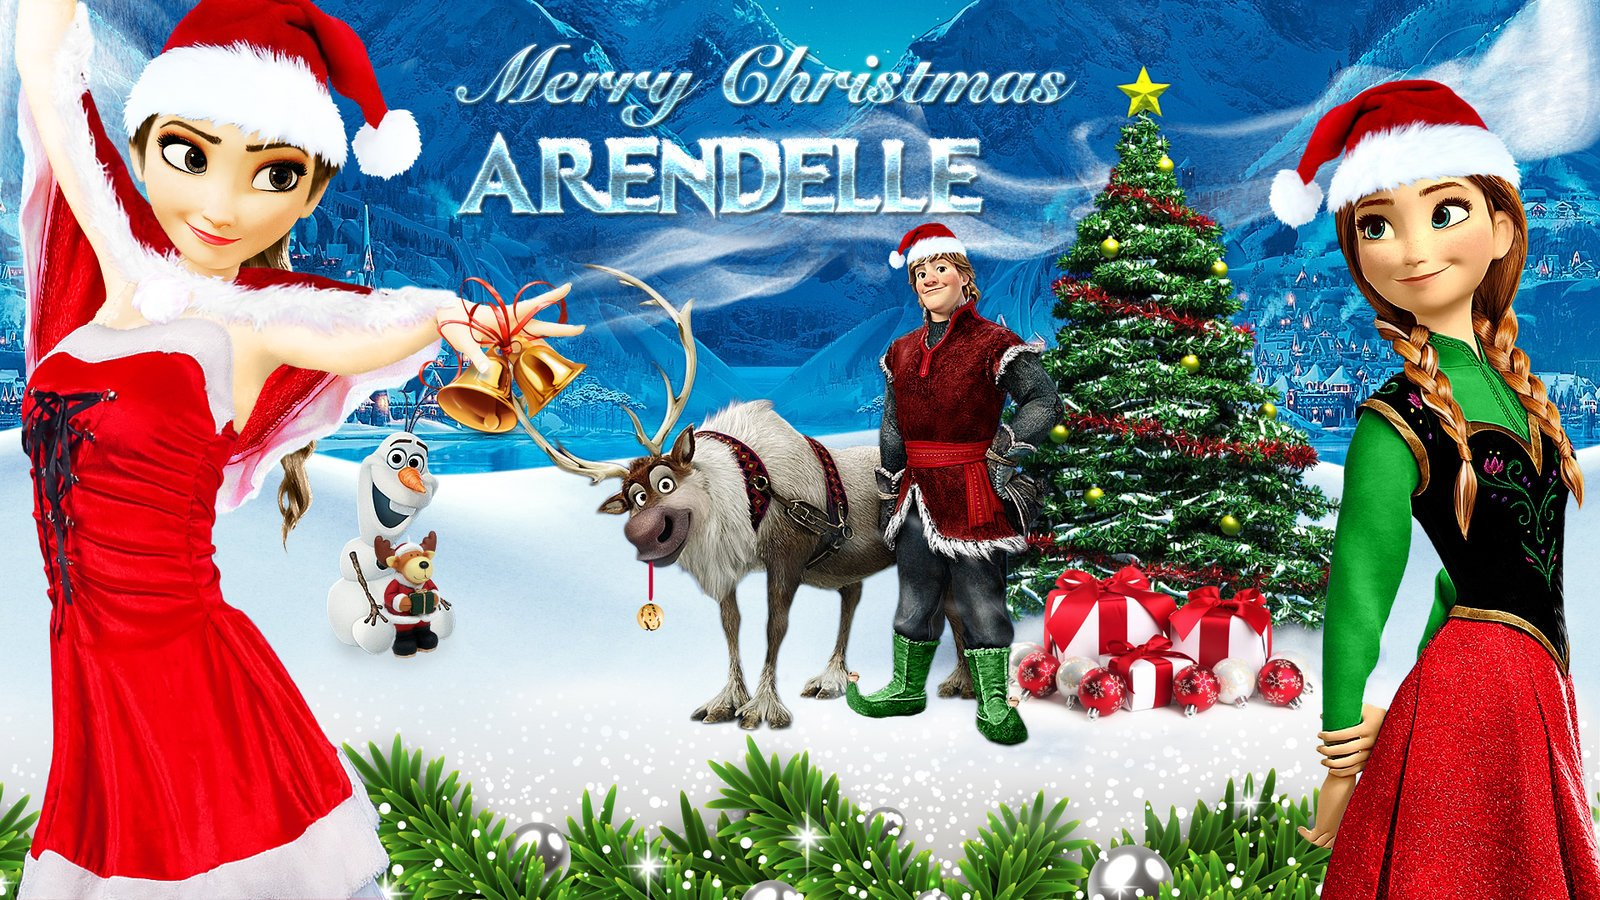 Frozen   1920x1080 Merry Christmas Arendelle by CoGraphiC on 1600x900